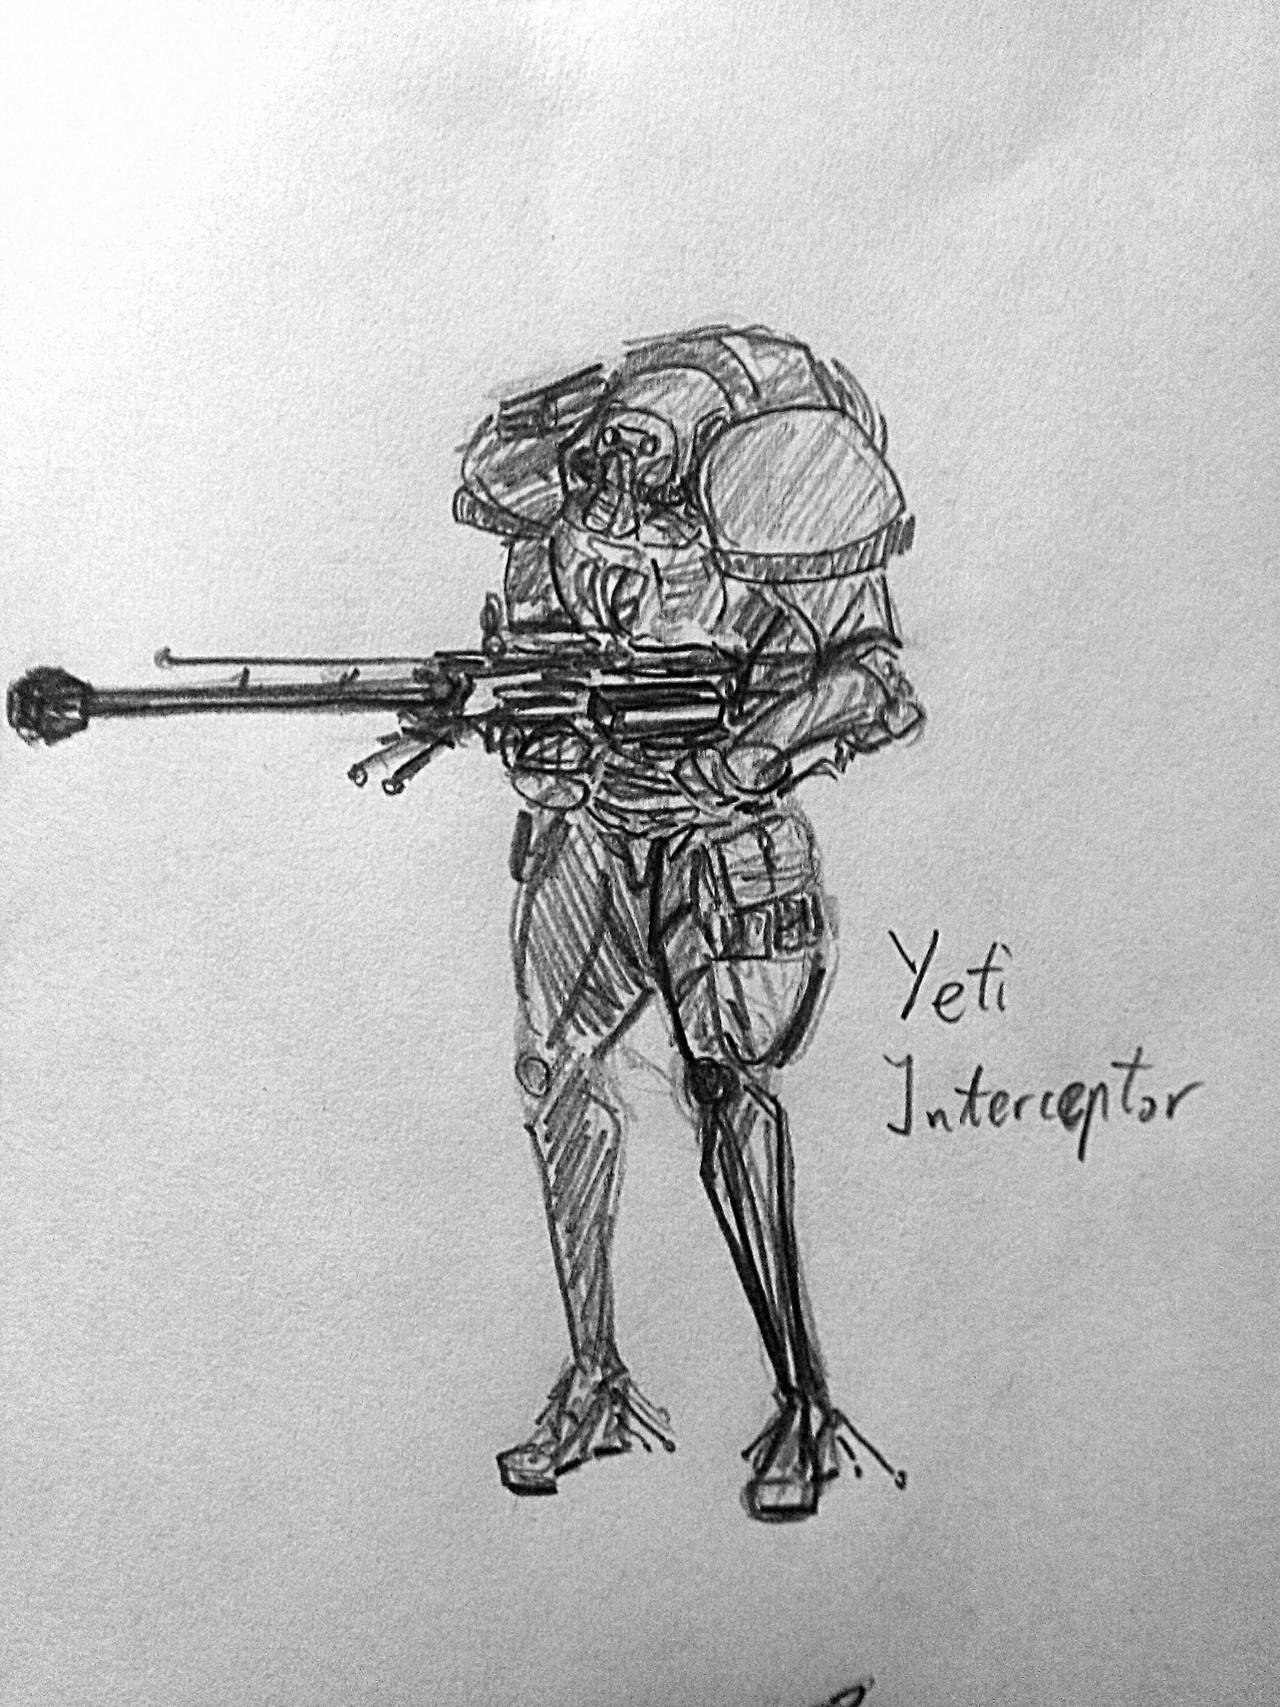 yeti_interceptor_by_huginthecrowda_dcubq